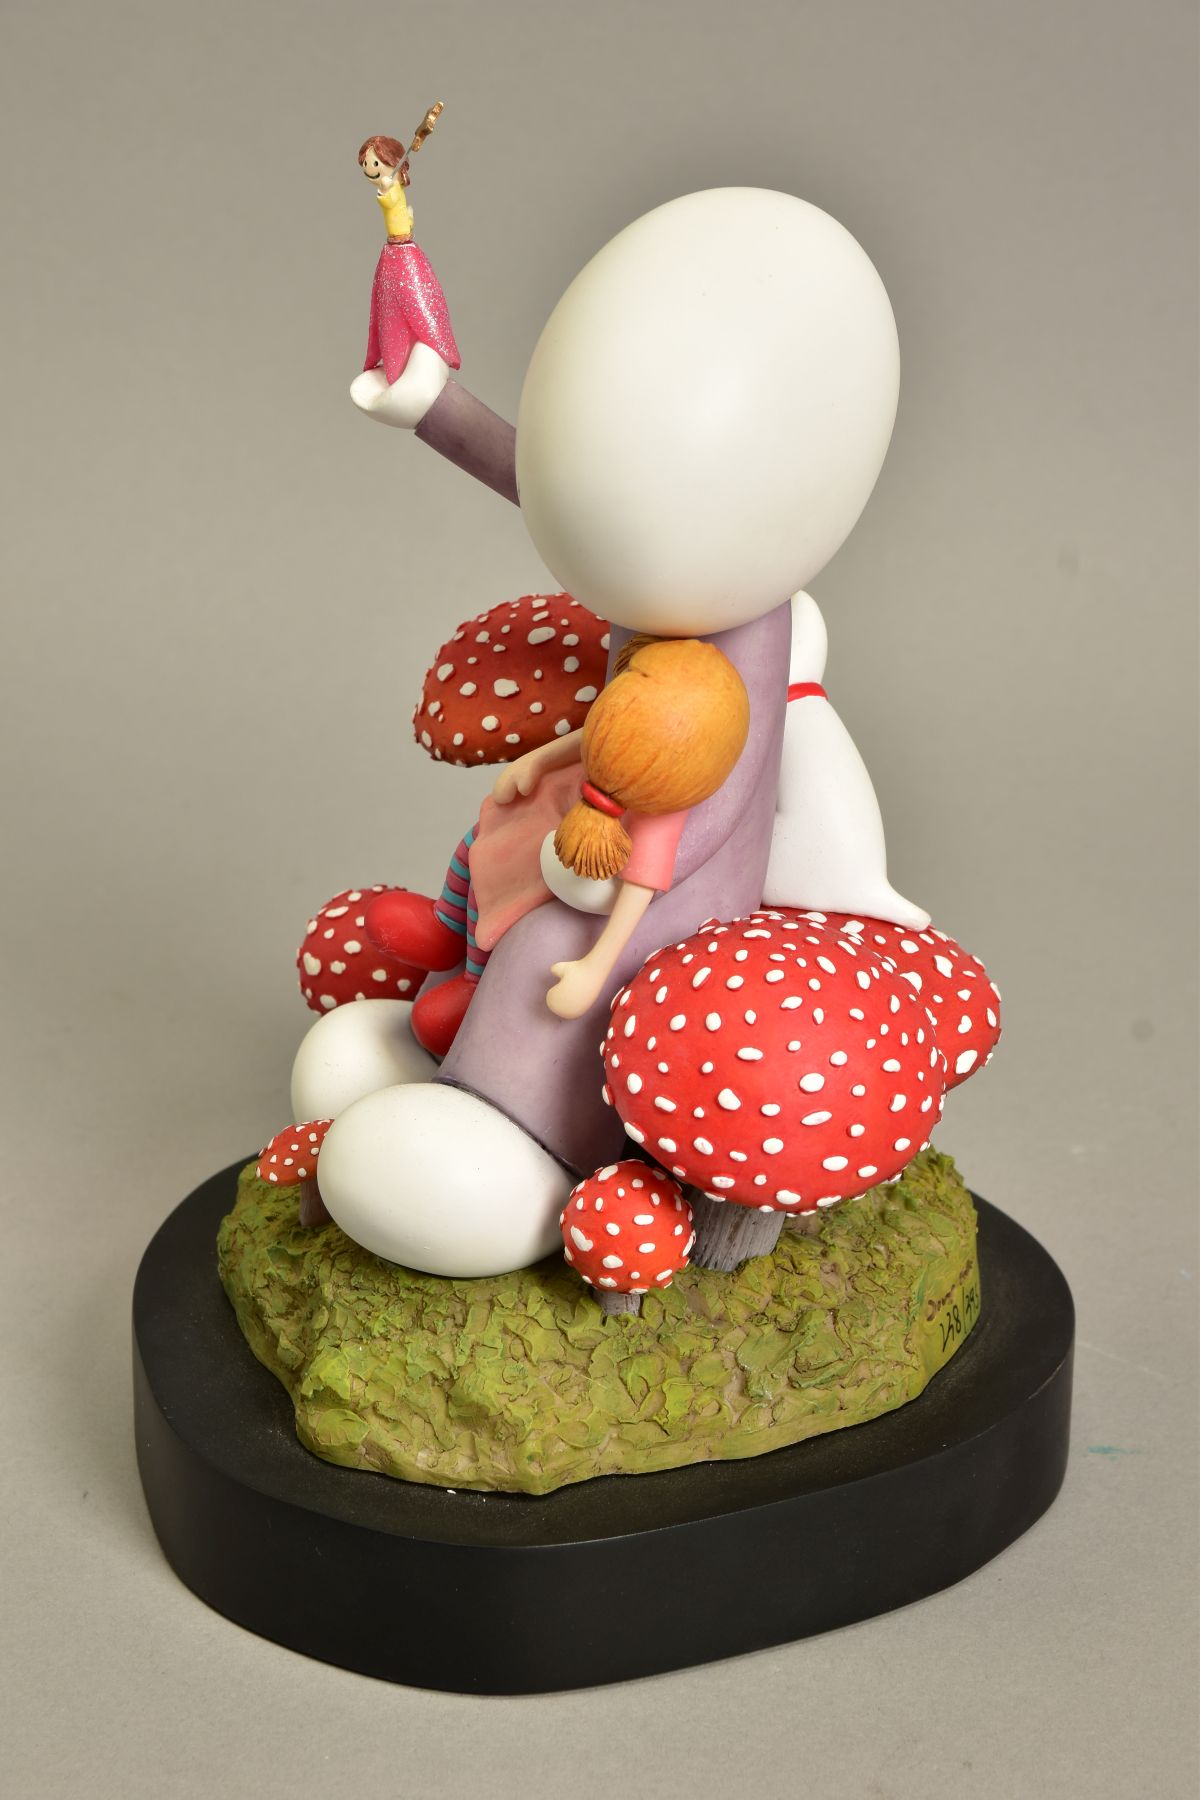 DOUG HYDE (BRITISH 1972) 'MAKE A WISH', limited edition sculpture of a girl and her doll, - Image 5 of 10